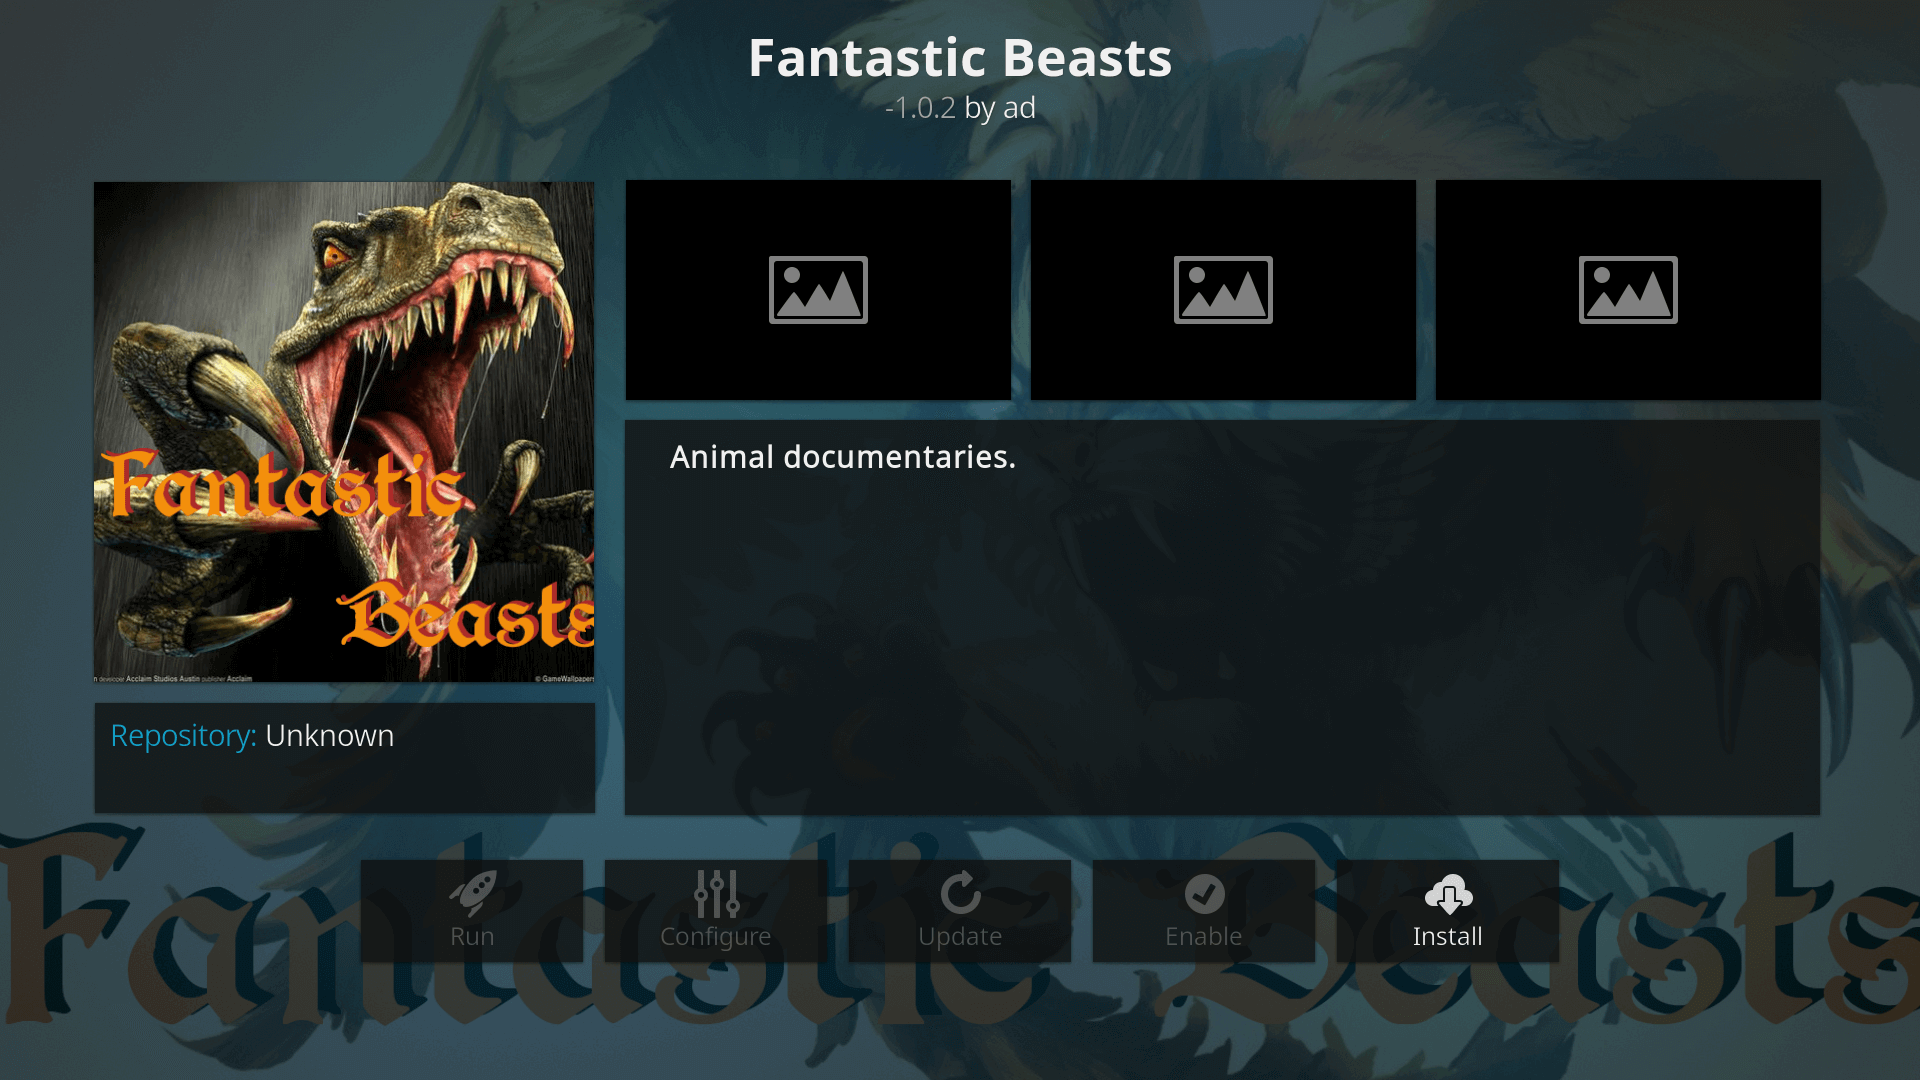 How to Install Fantastic Beasts Kodi addon on Krypton